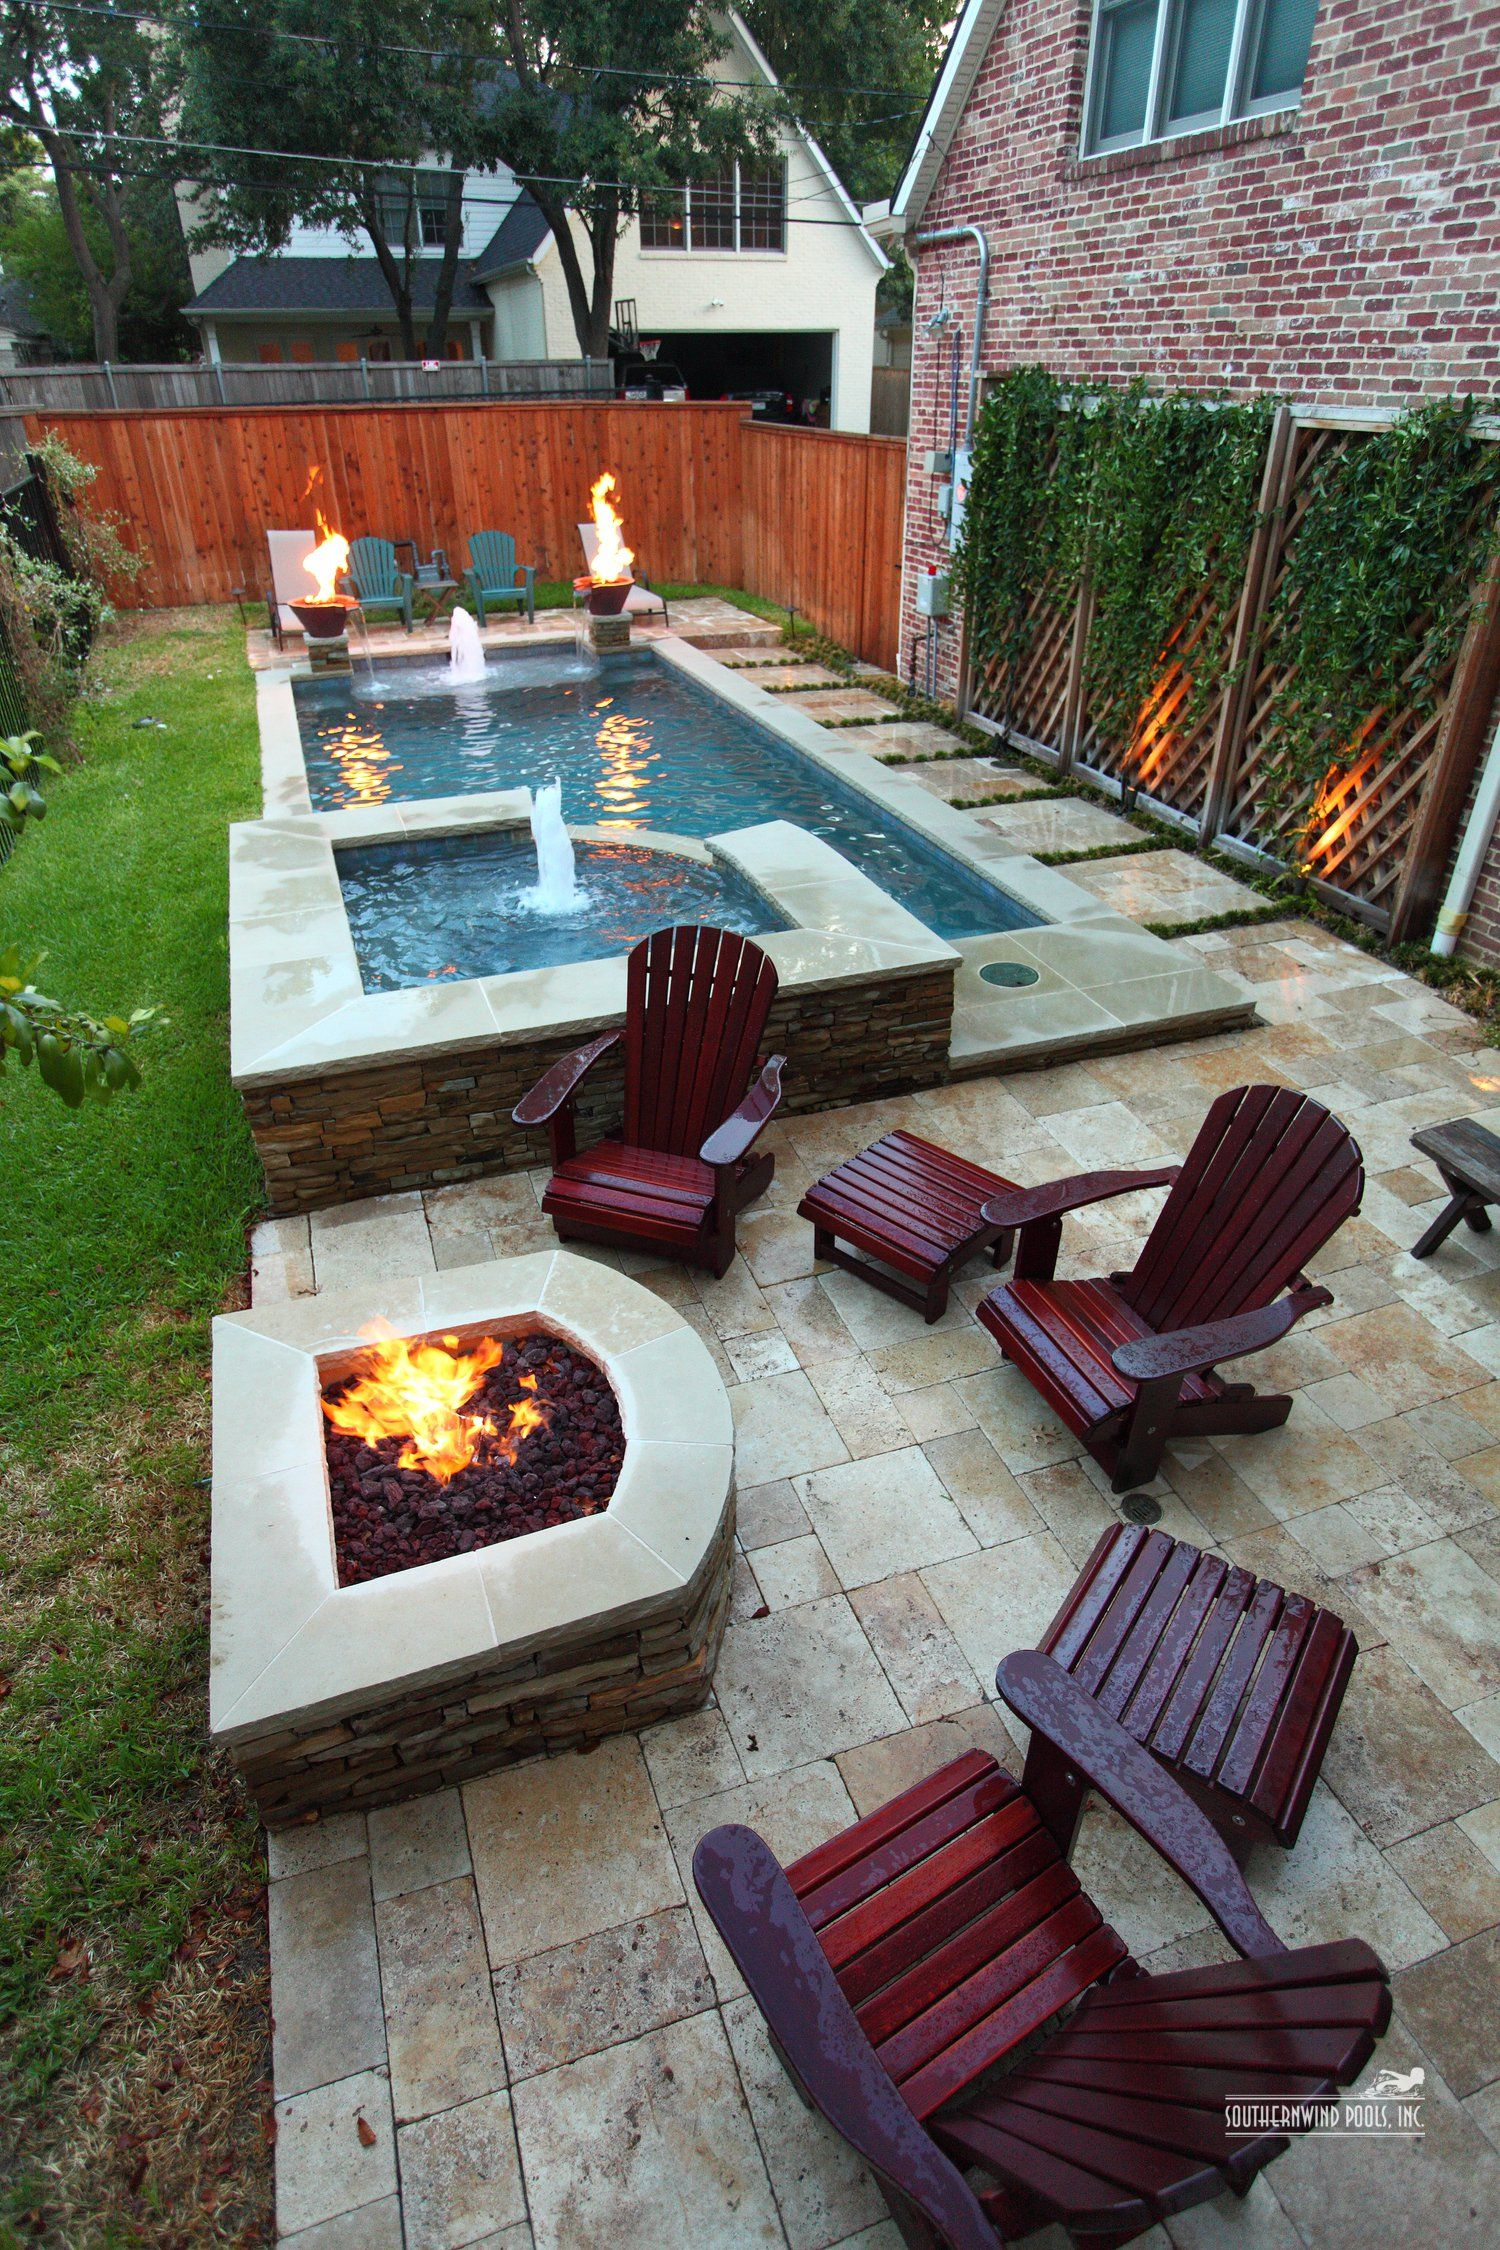 Awesome Narrow Pool With Hot Tub And Fire Pit Everything I Want Small Backyard Pools Small Backyard Landscaping Backyard